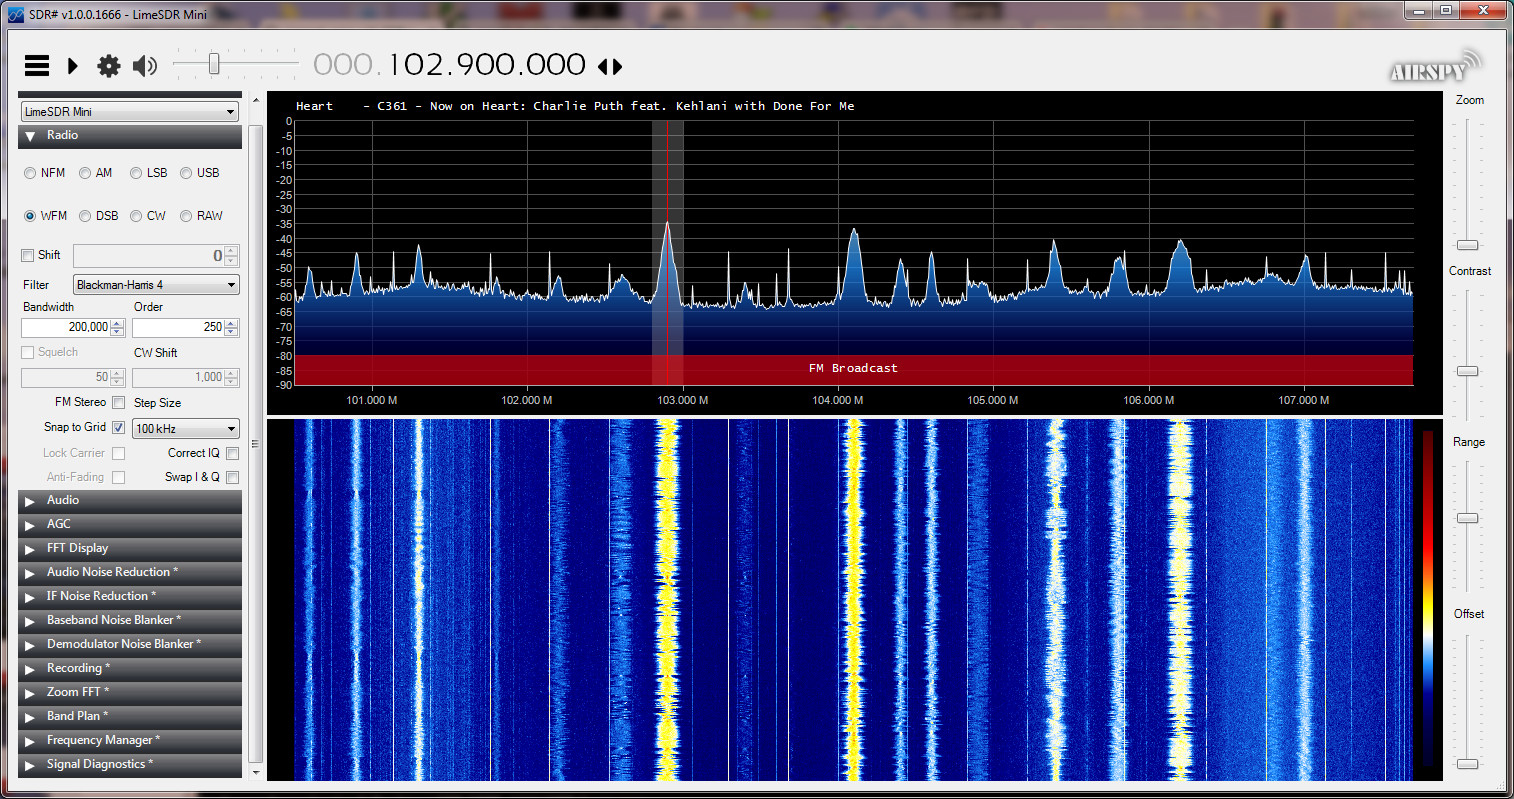 Limesdr mini with SDRsharp - LimeSDR - Myriad RF Discourse